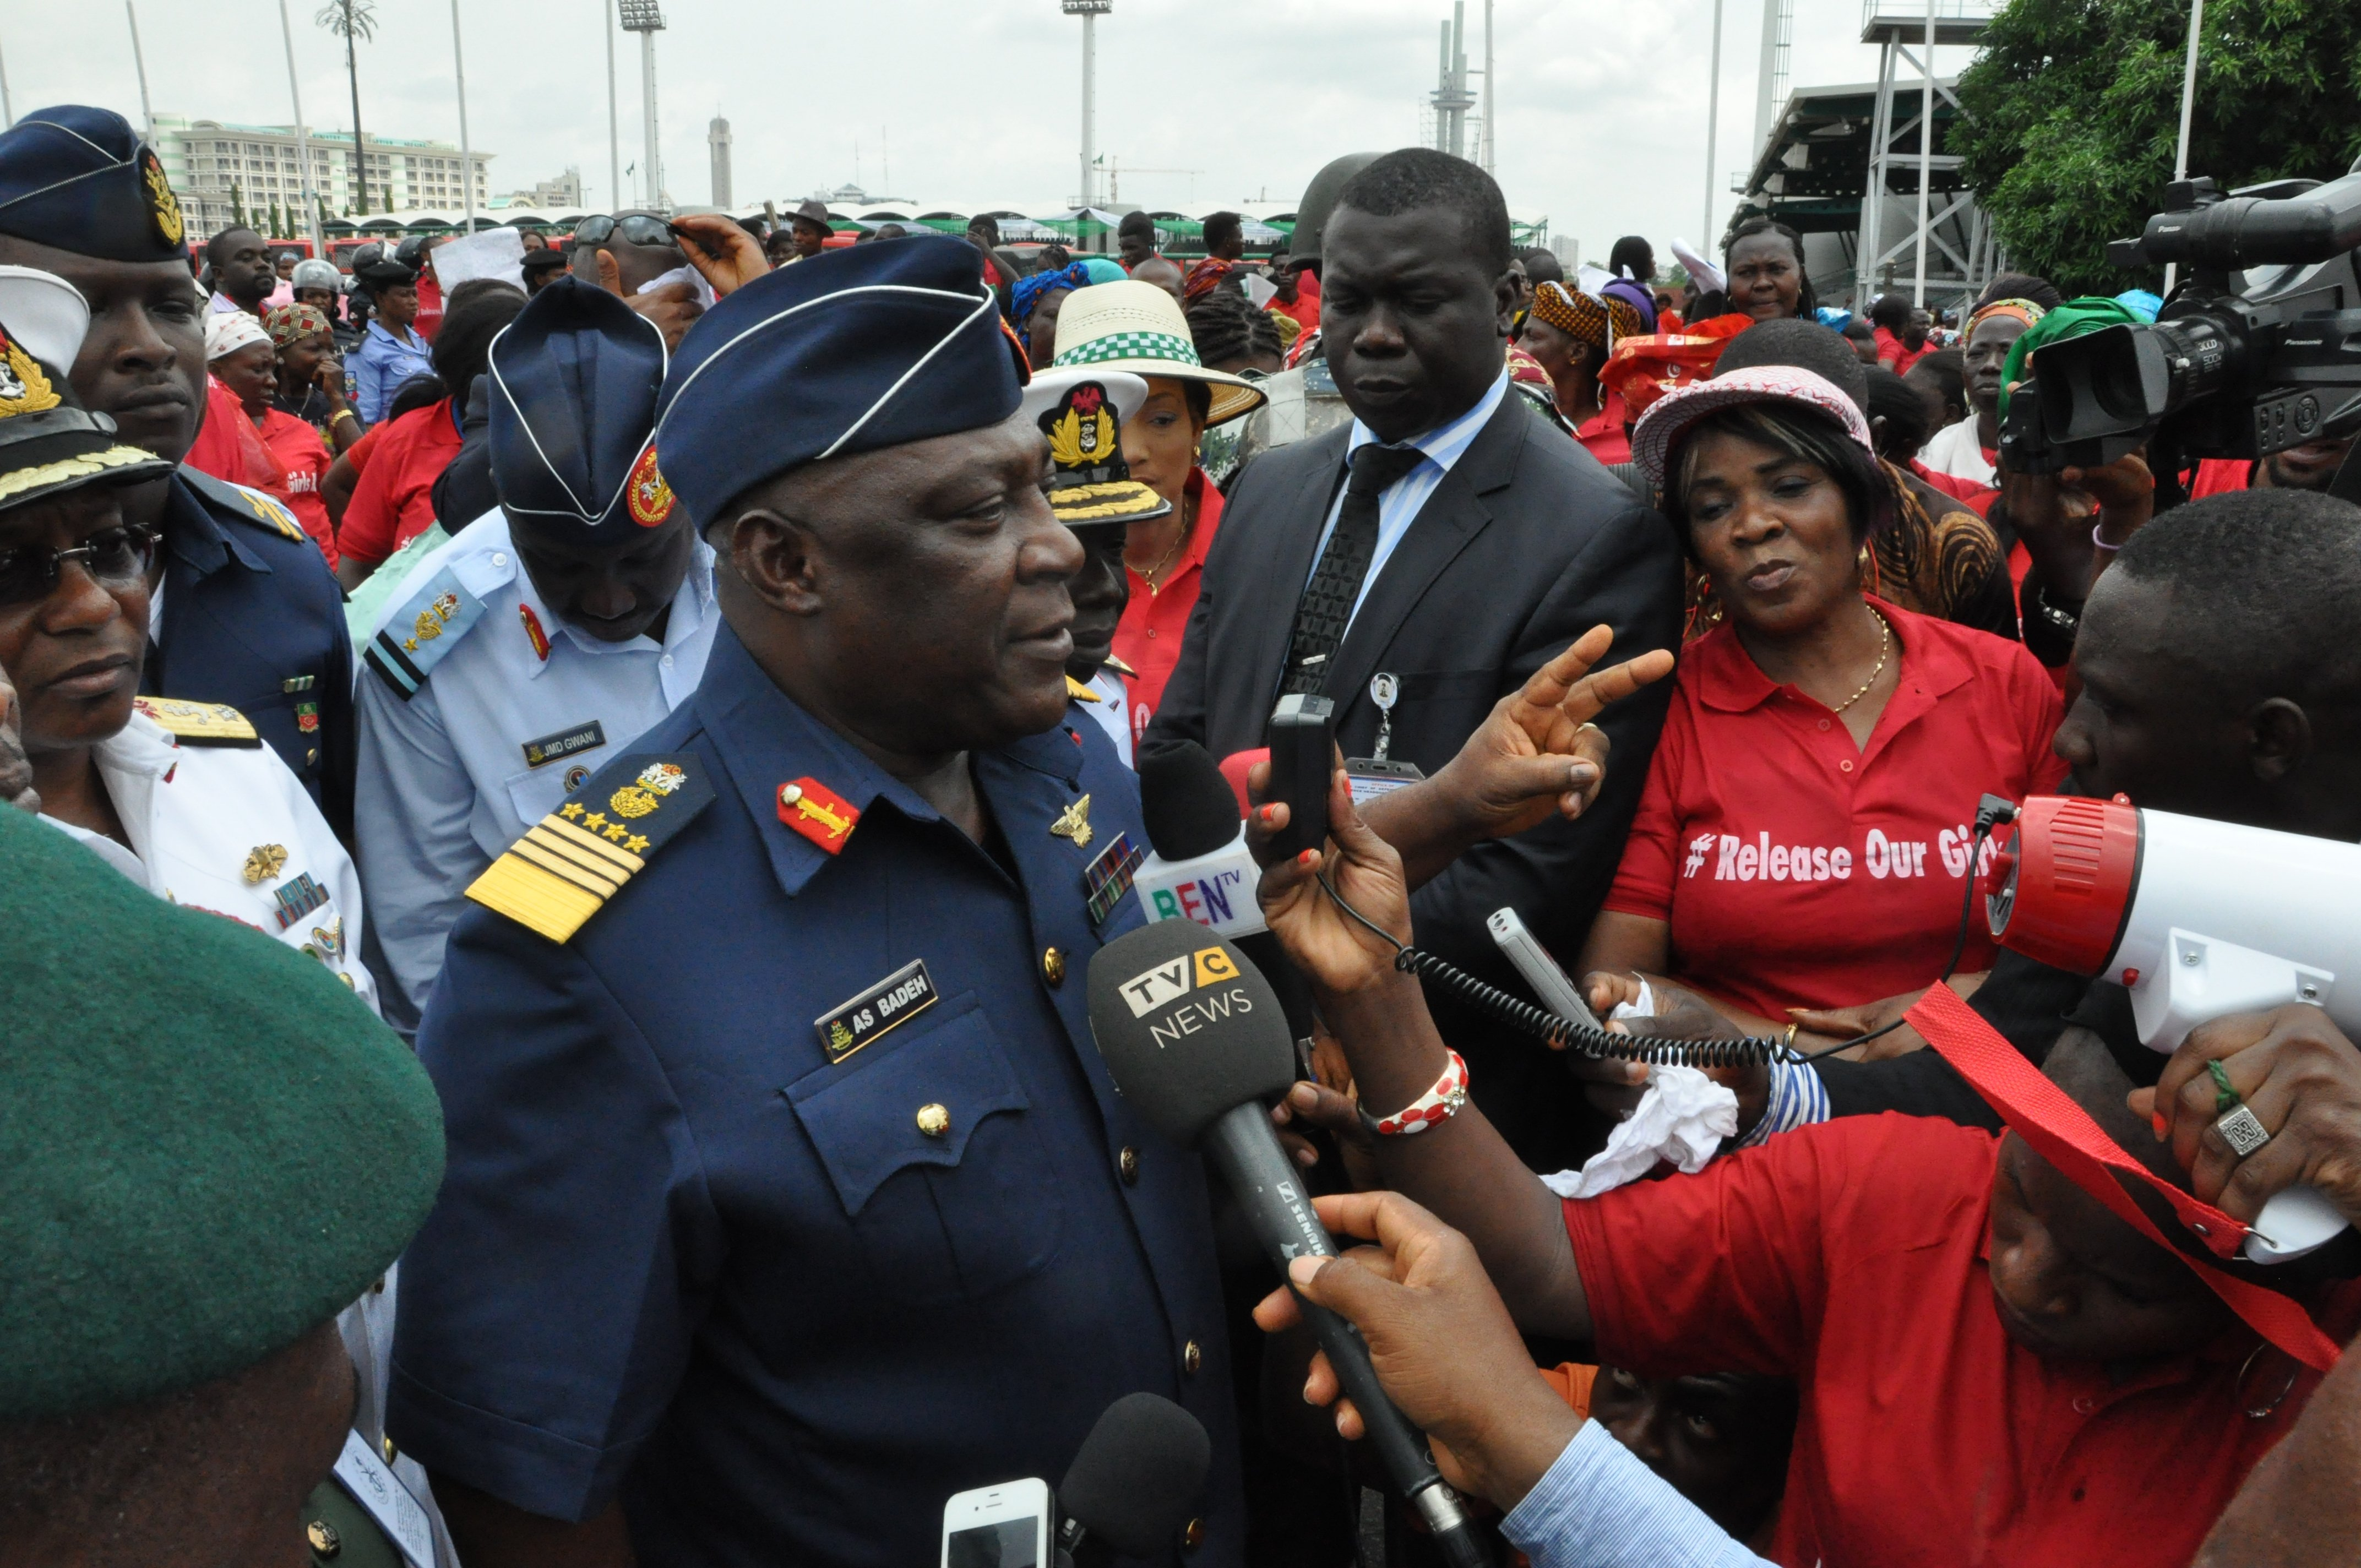 Nigeria defence chief Air Marshal Alex Badeh, center, speaks during a demonstration calling on the government to rescue the kidnapped schoolgirls on May 26, 2014, in the Nigerian capital, Abuja